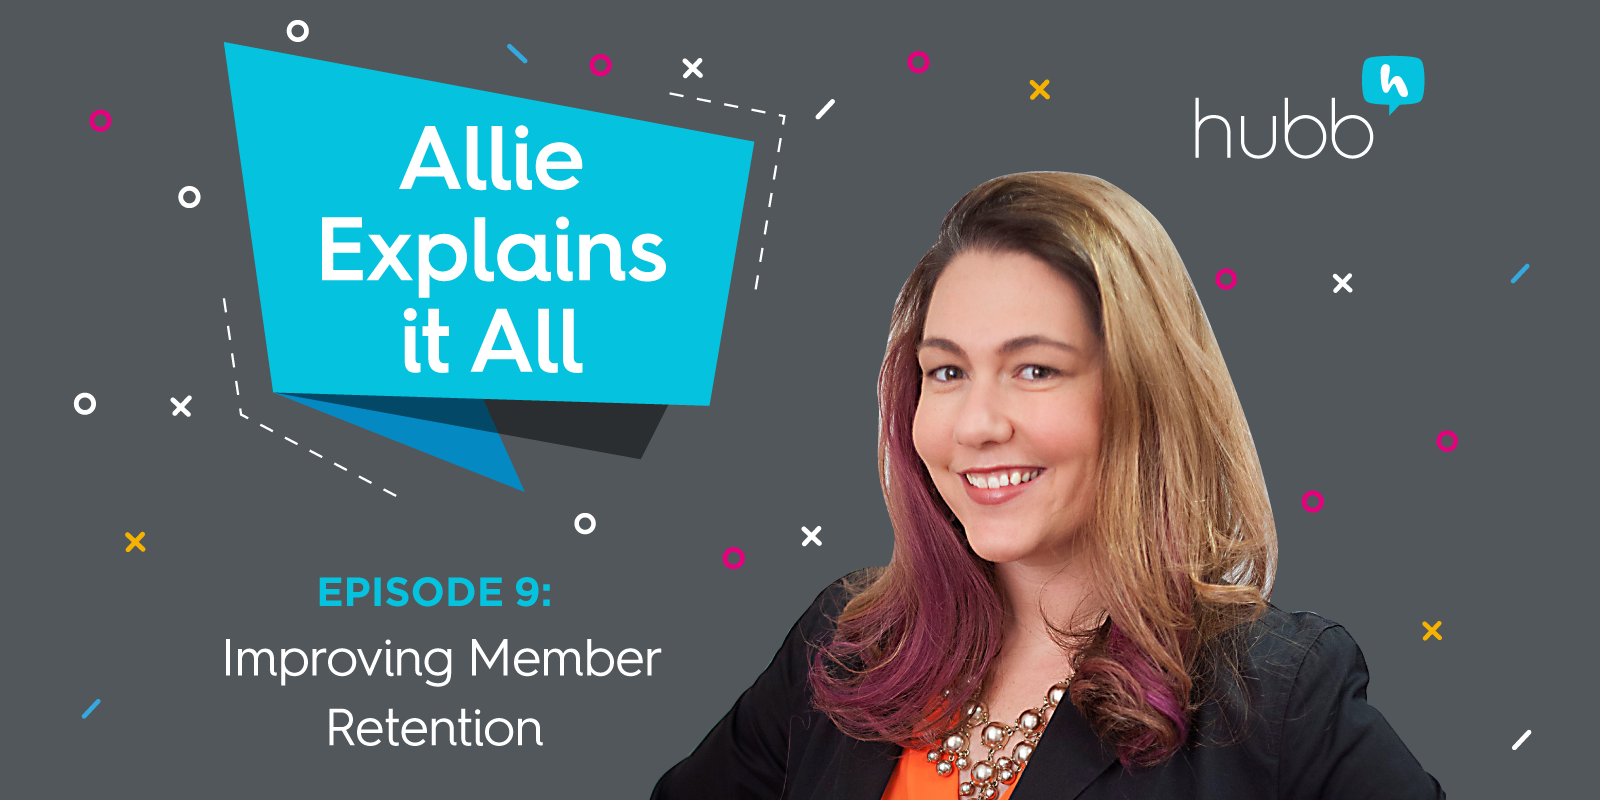 Allie-Answers-Webinar-2019-Episode9-Social-1